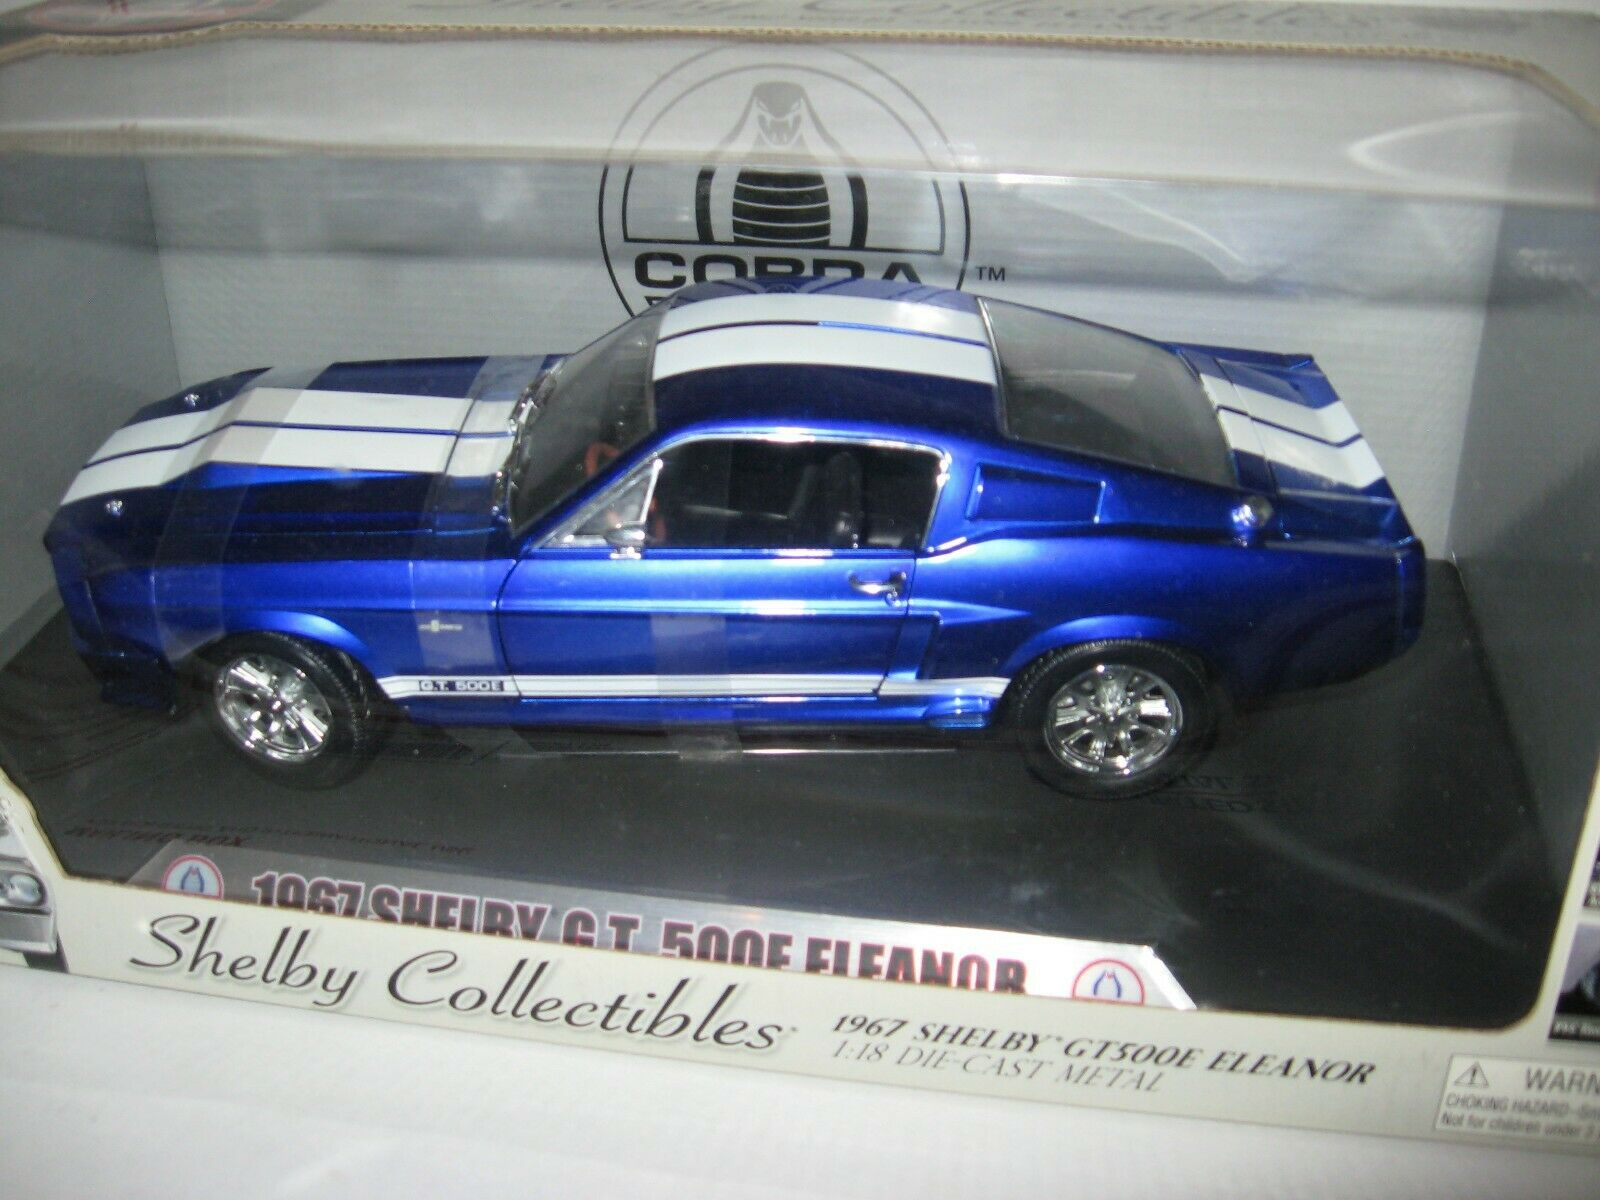 1 18 SHELBY COLLECTIBLES ELEANOR 1967 SHELBY GT 500E ANODIZED LAZER blueE CHASE